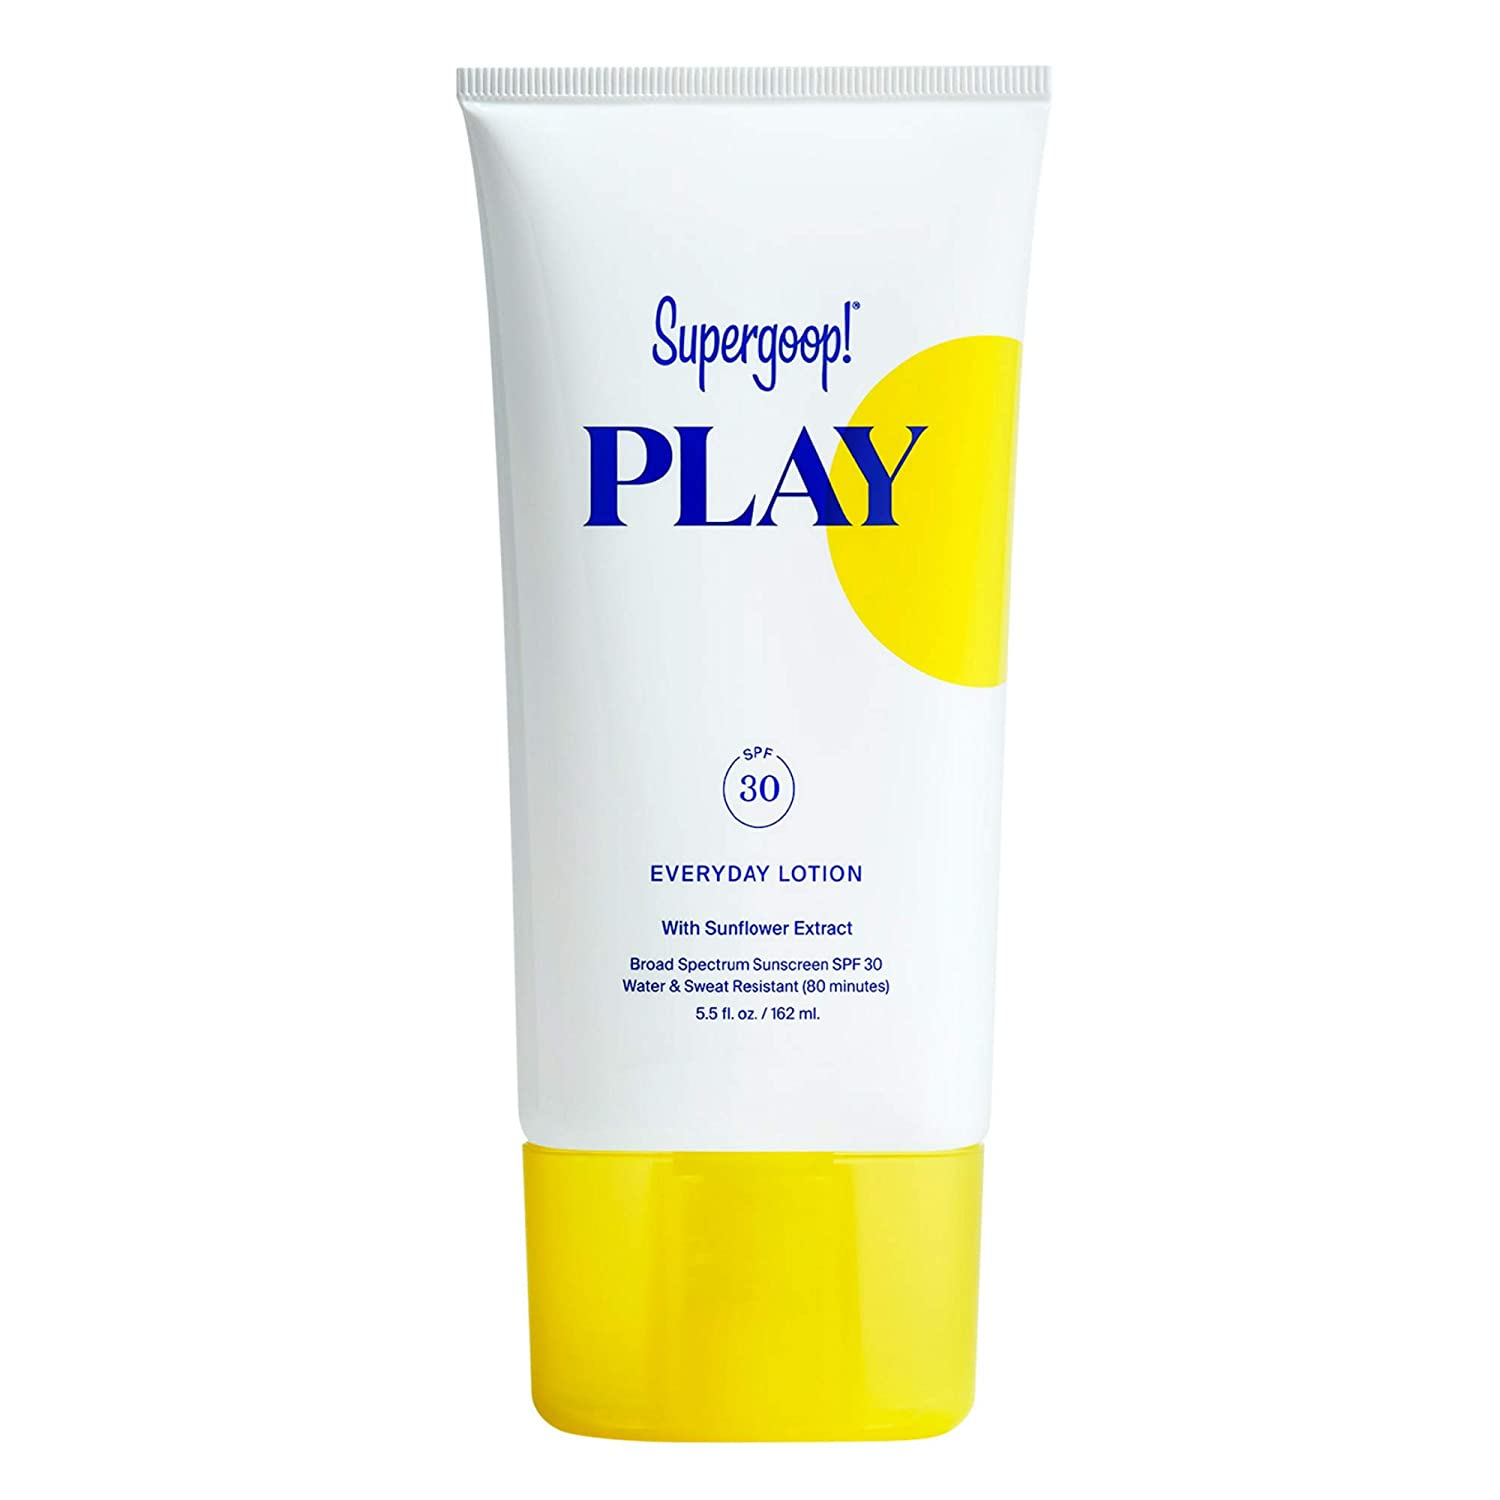 supergoop.com - PLAY Everyday Lotion SPF 50 with Sunflower Extract